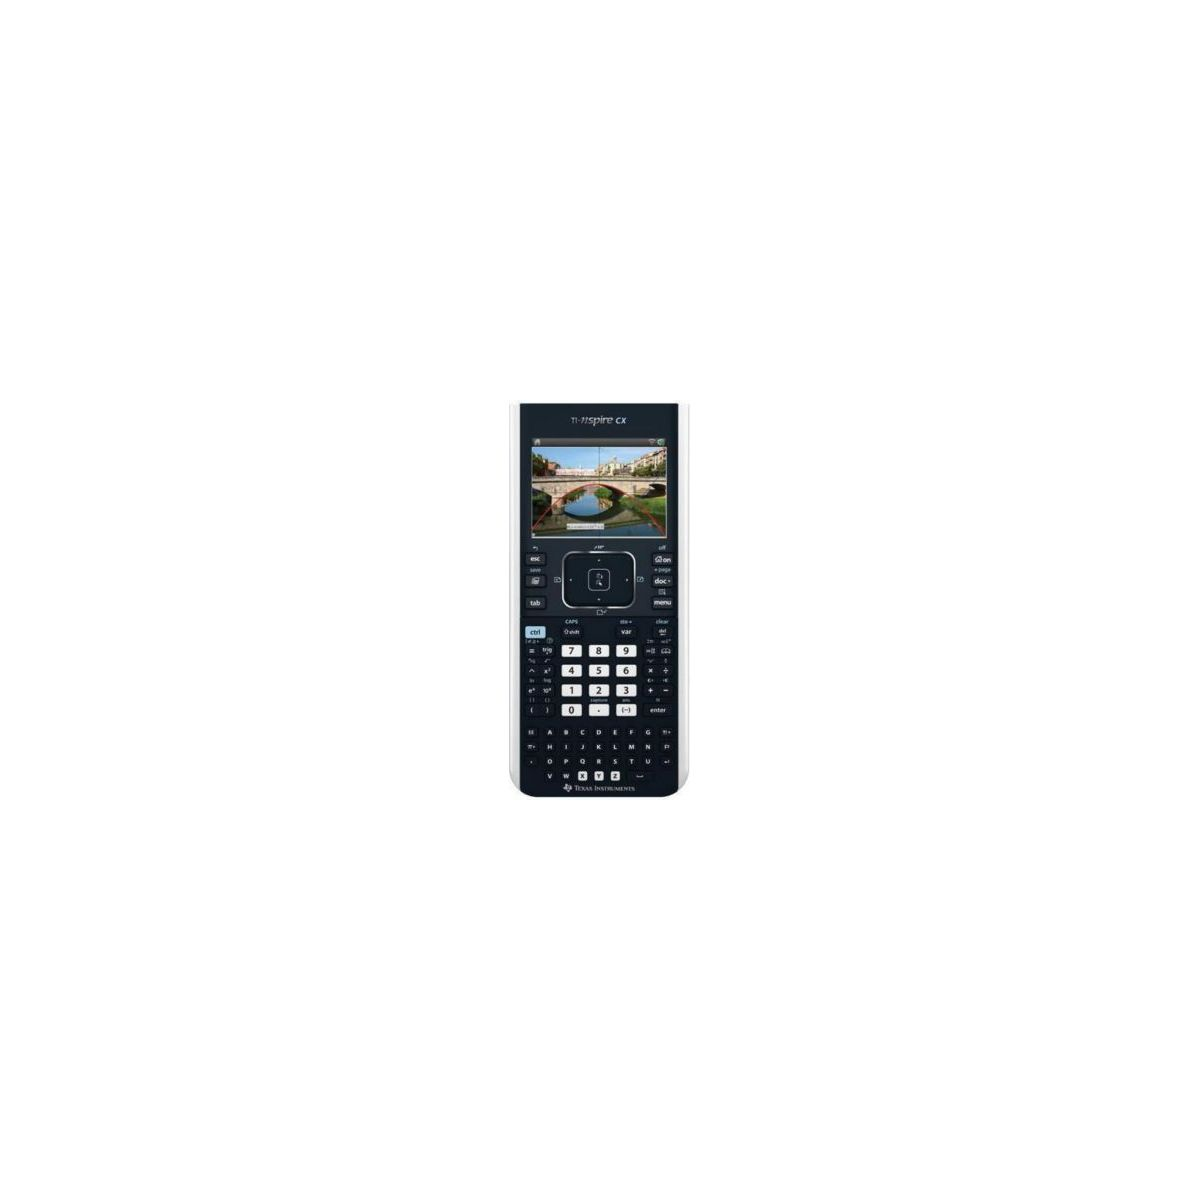 Calculatrice graphique TEXAS INSTRUMENTS TI-Nspire CX Noir (photo)